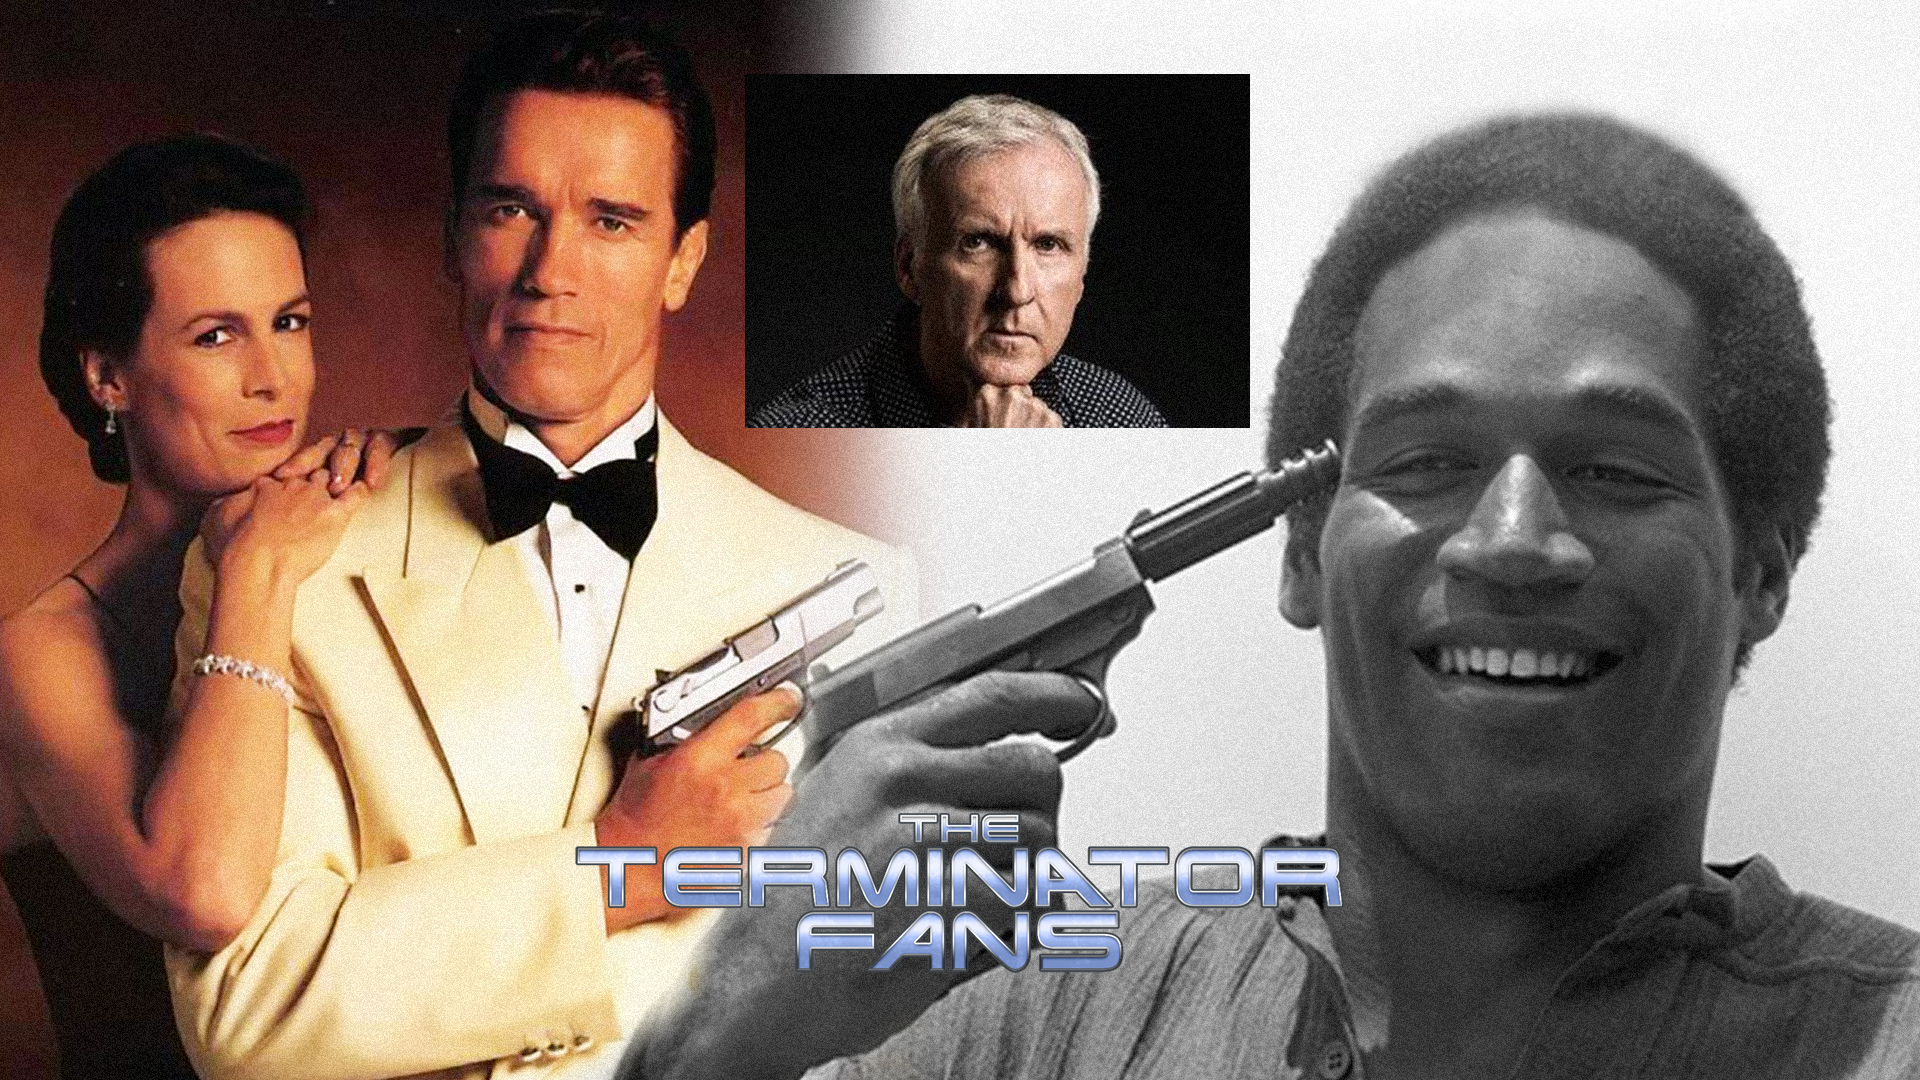 James Cameron Paused Post-Production On True Lies To Watch O.J. Simpson's Car Chase